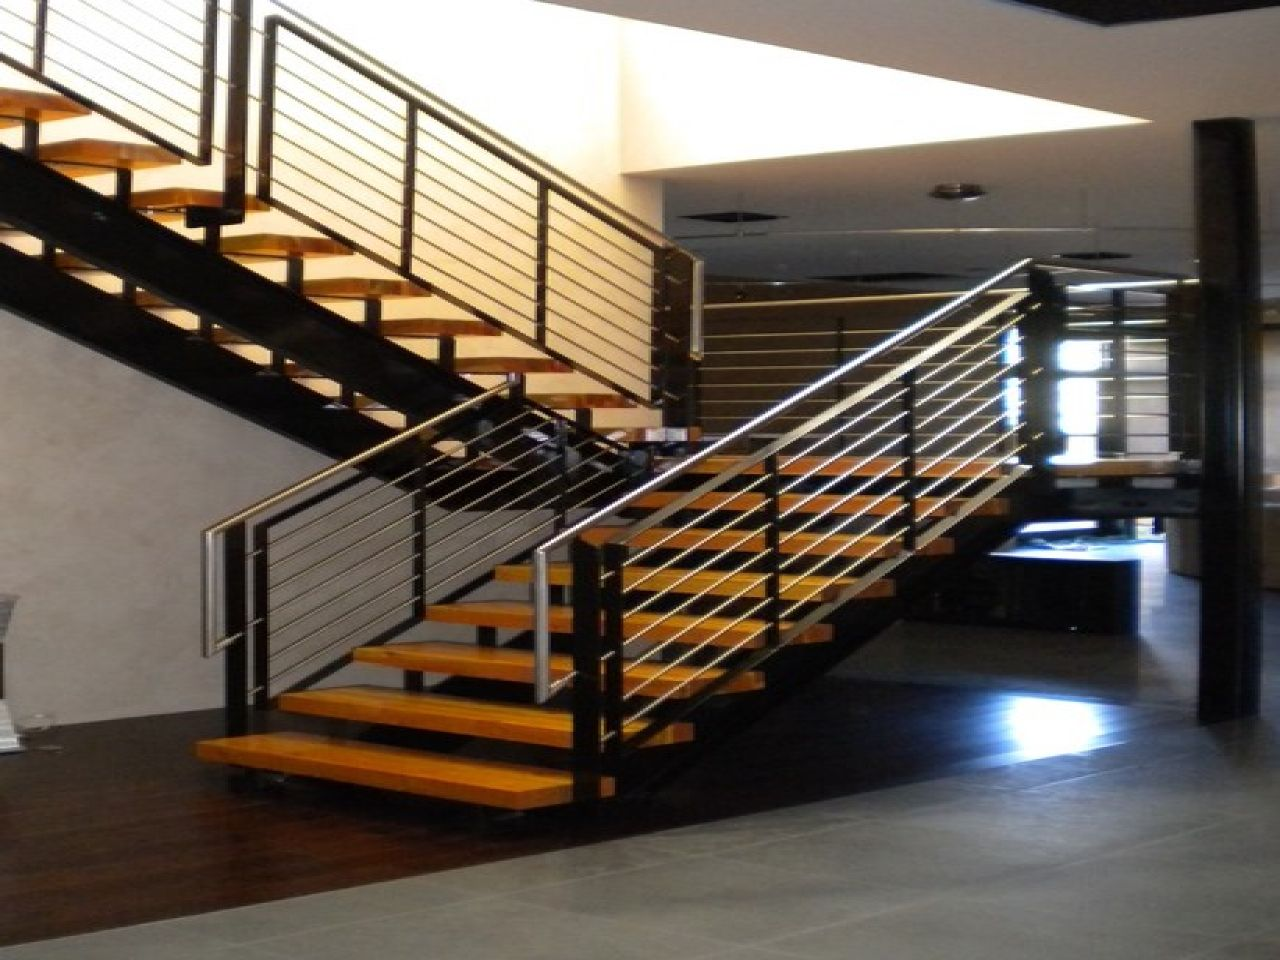 Stainless Steel Staircase Railing | Staircase glass railing designs,  stainless steel stair railings stairs .